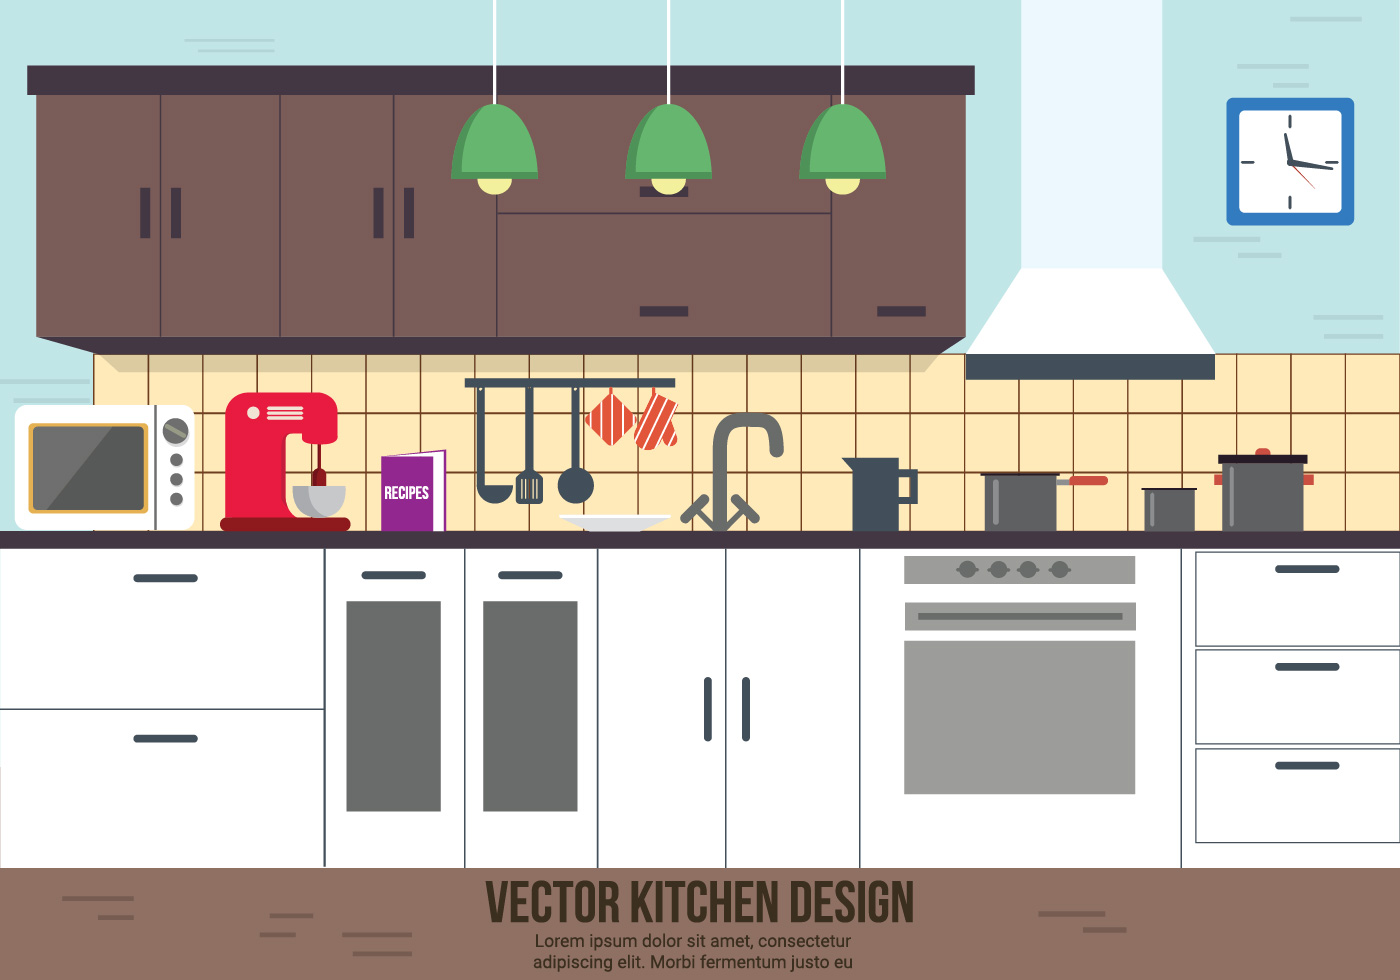 Free kitchen vector design download free vector art for Kichan image